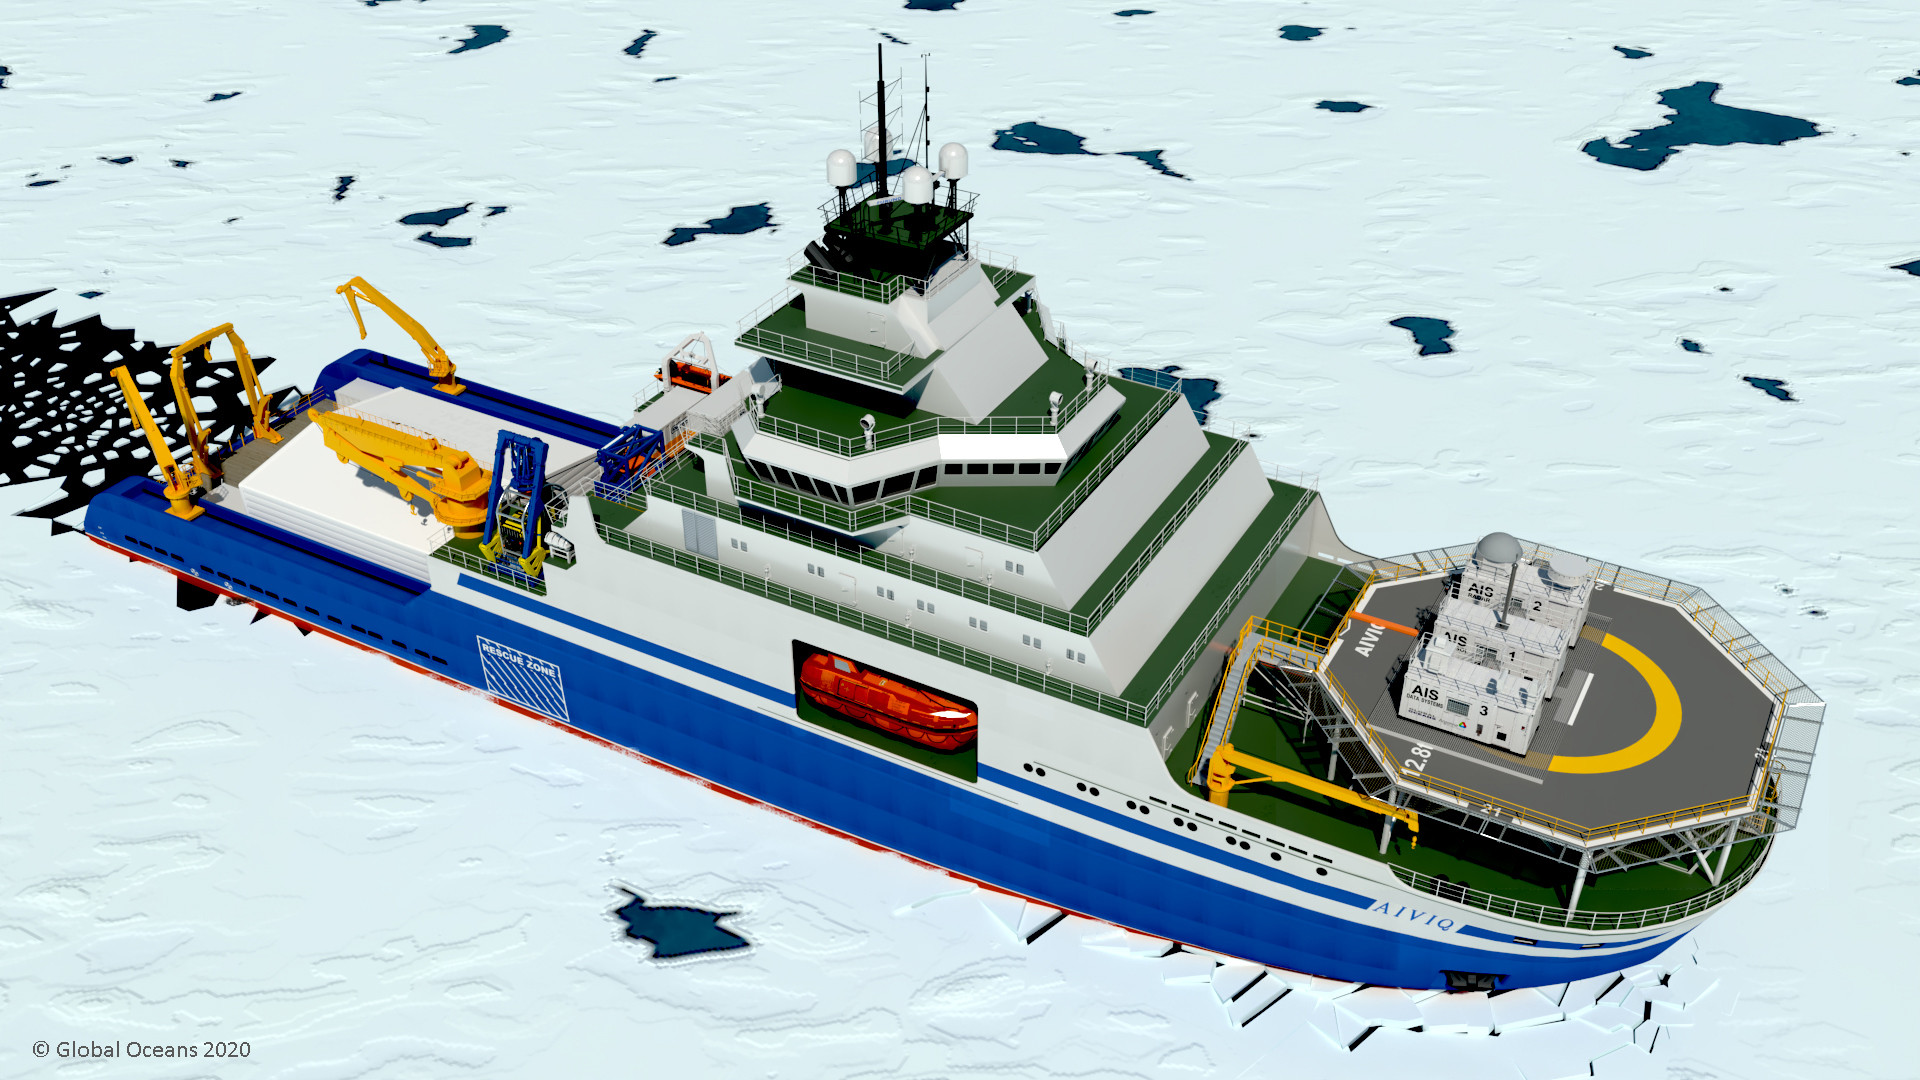 Figure 6: AIS Observatory deployed on the 110-meter Aiviq Icebreaker.